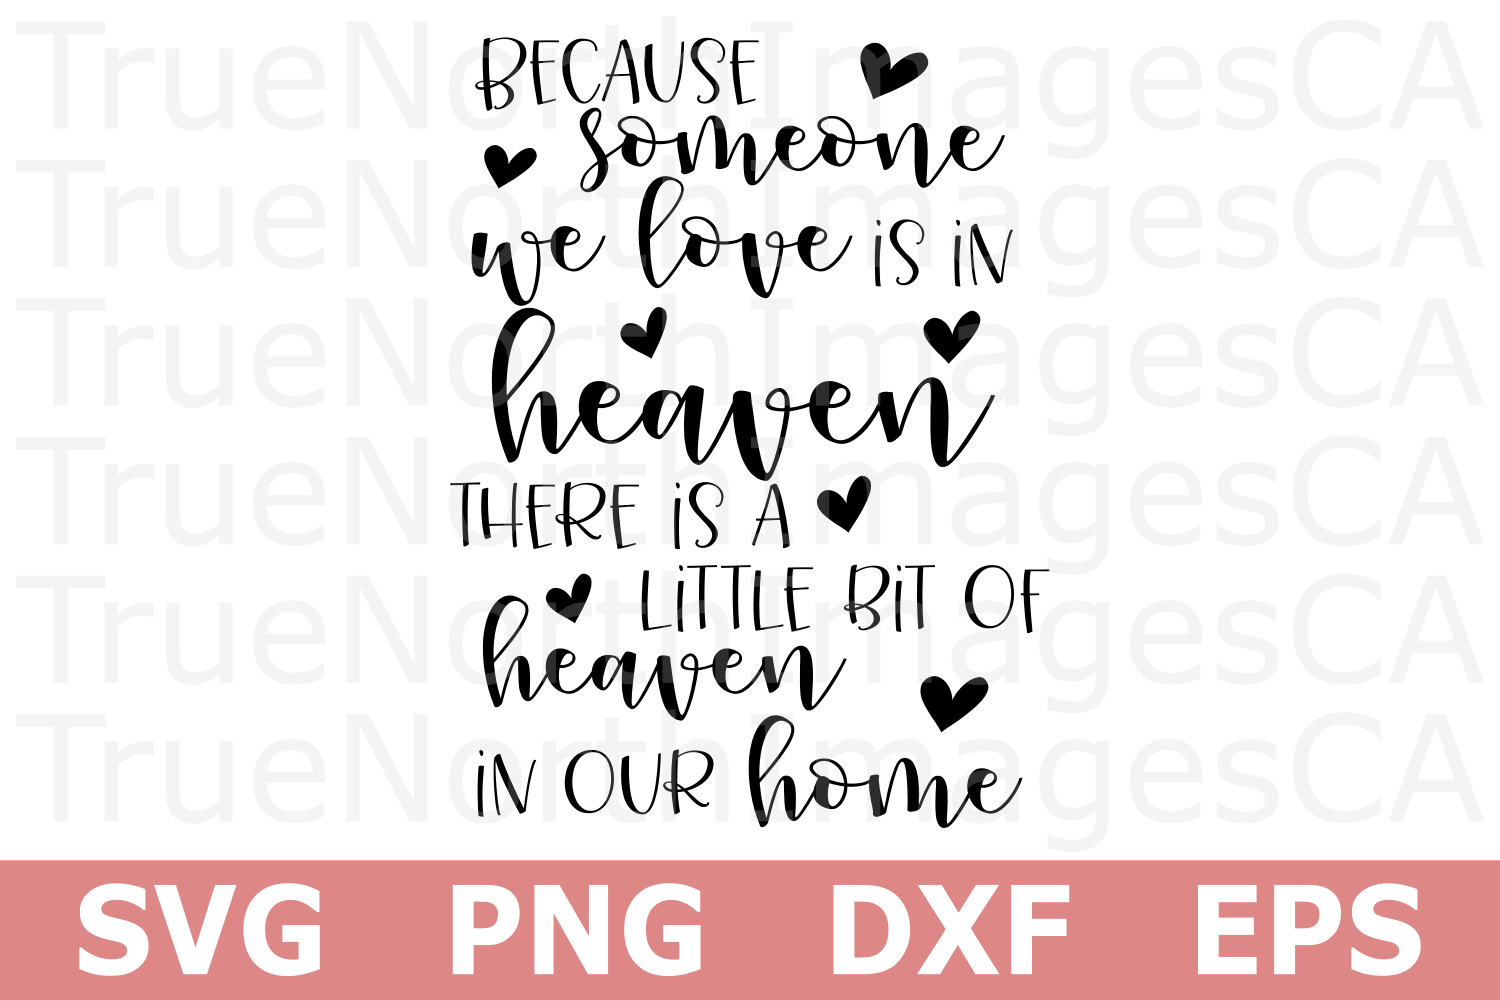 Someone We Love is in Heaven - A Memorial SVG Cut File example image 2